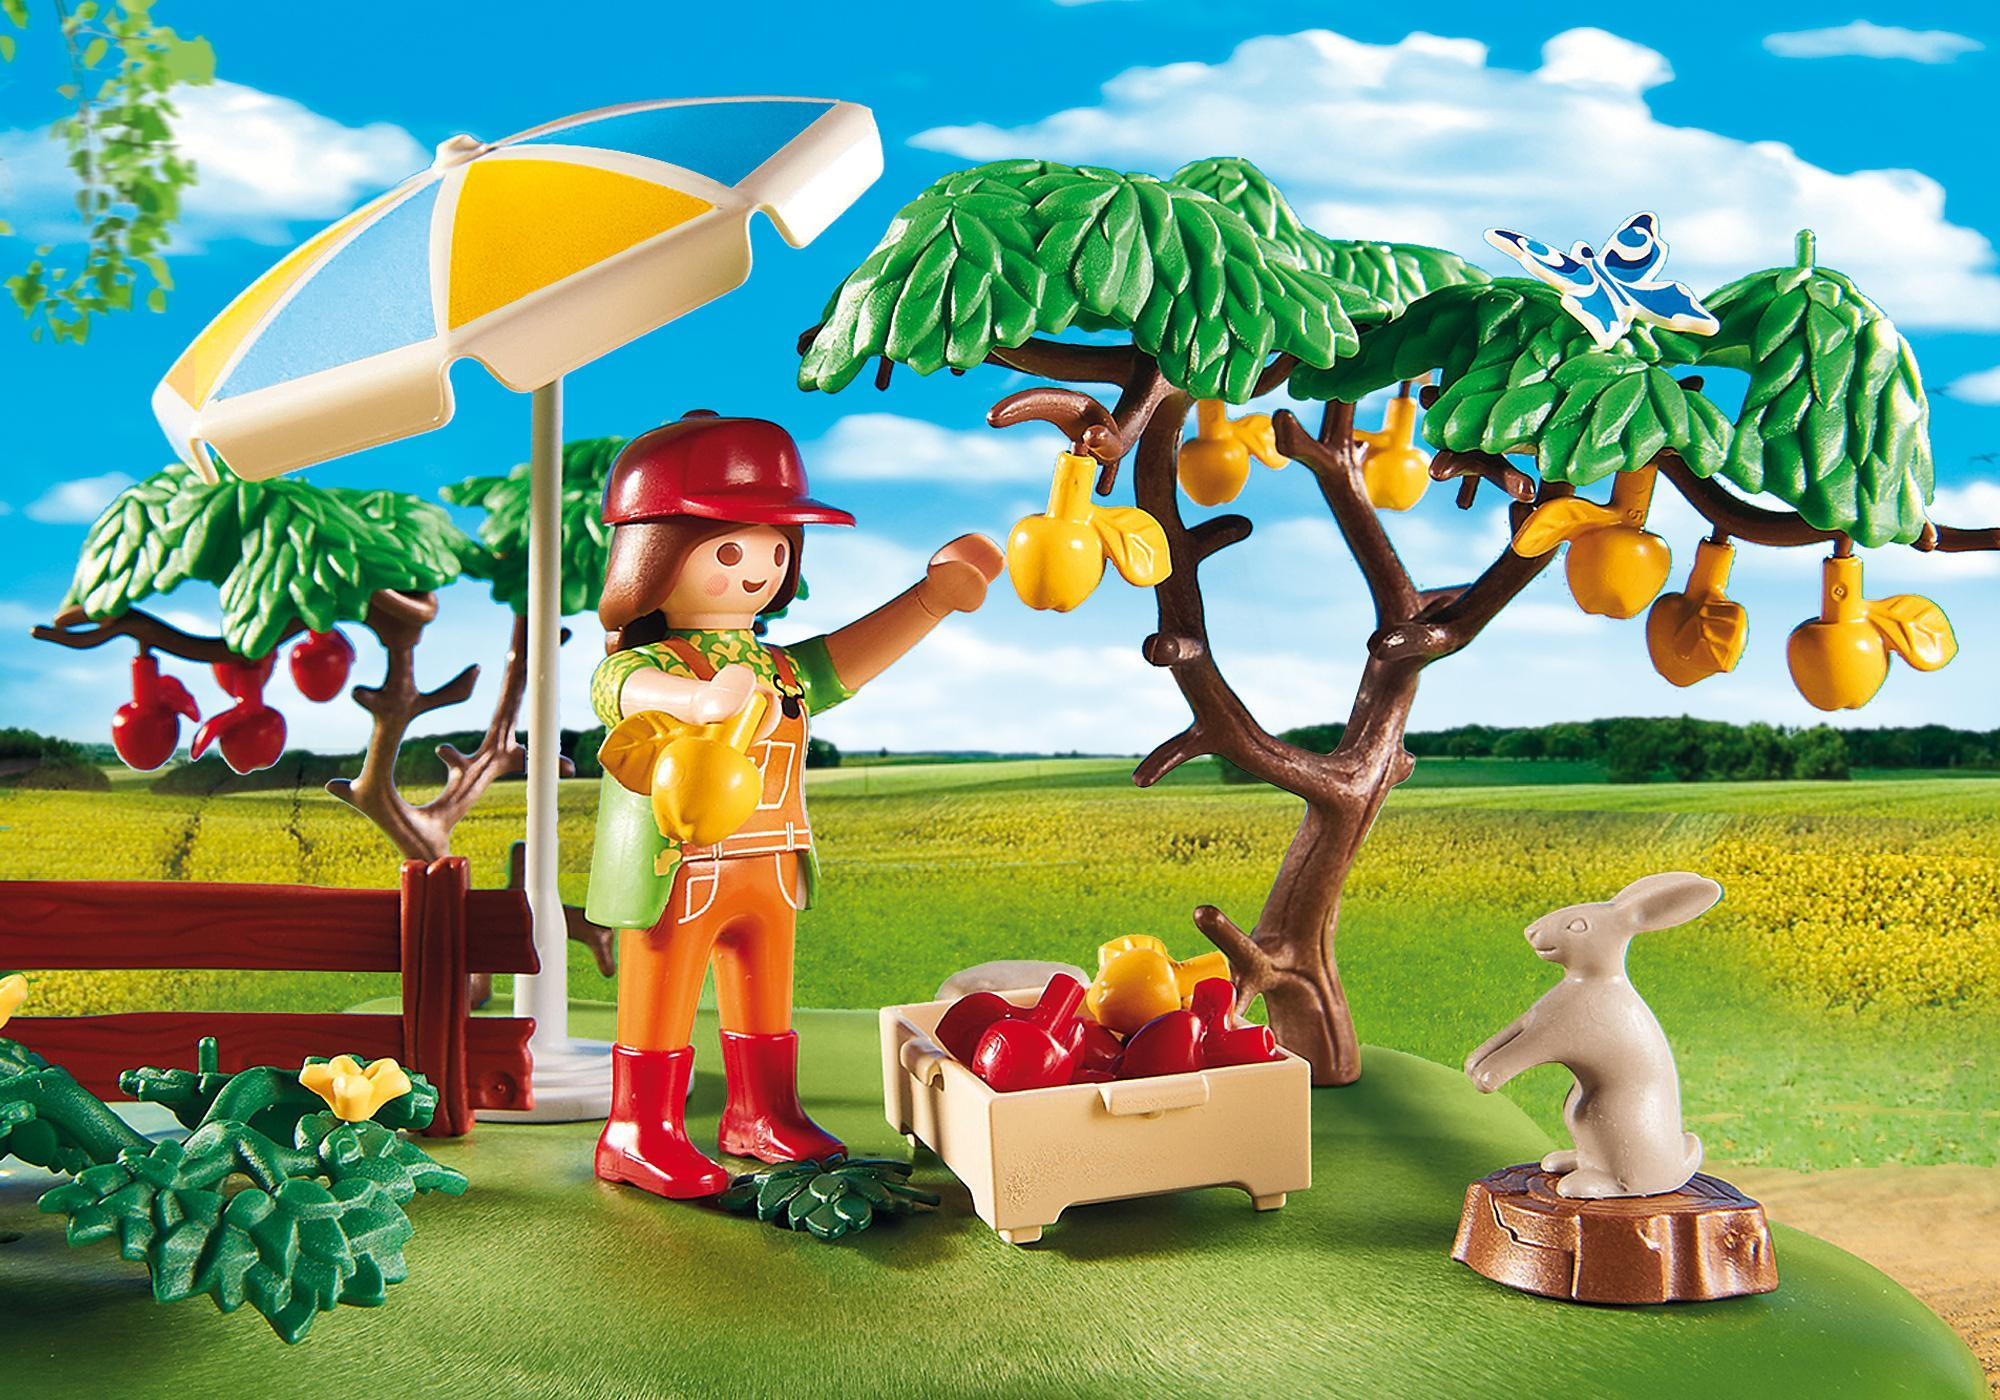 http://media.playmobil.com/i/playmobil/6870_product_extra1/StarterSet Obsternte